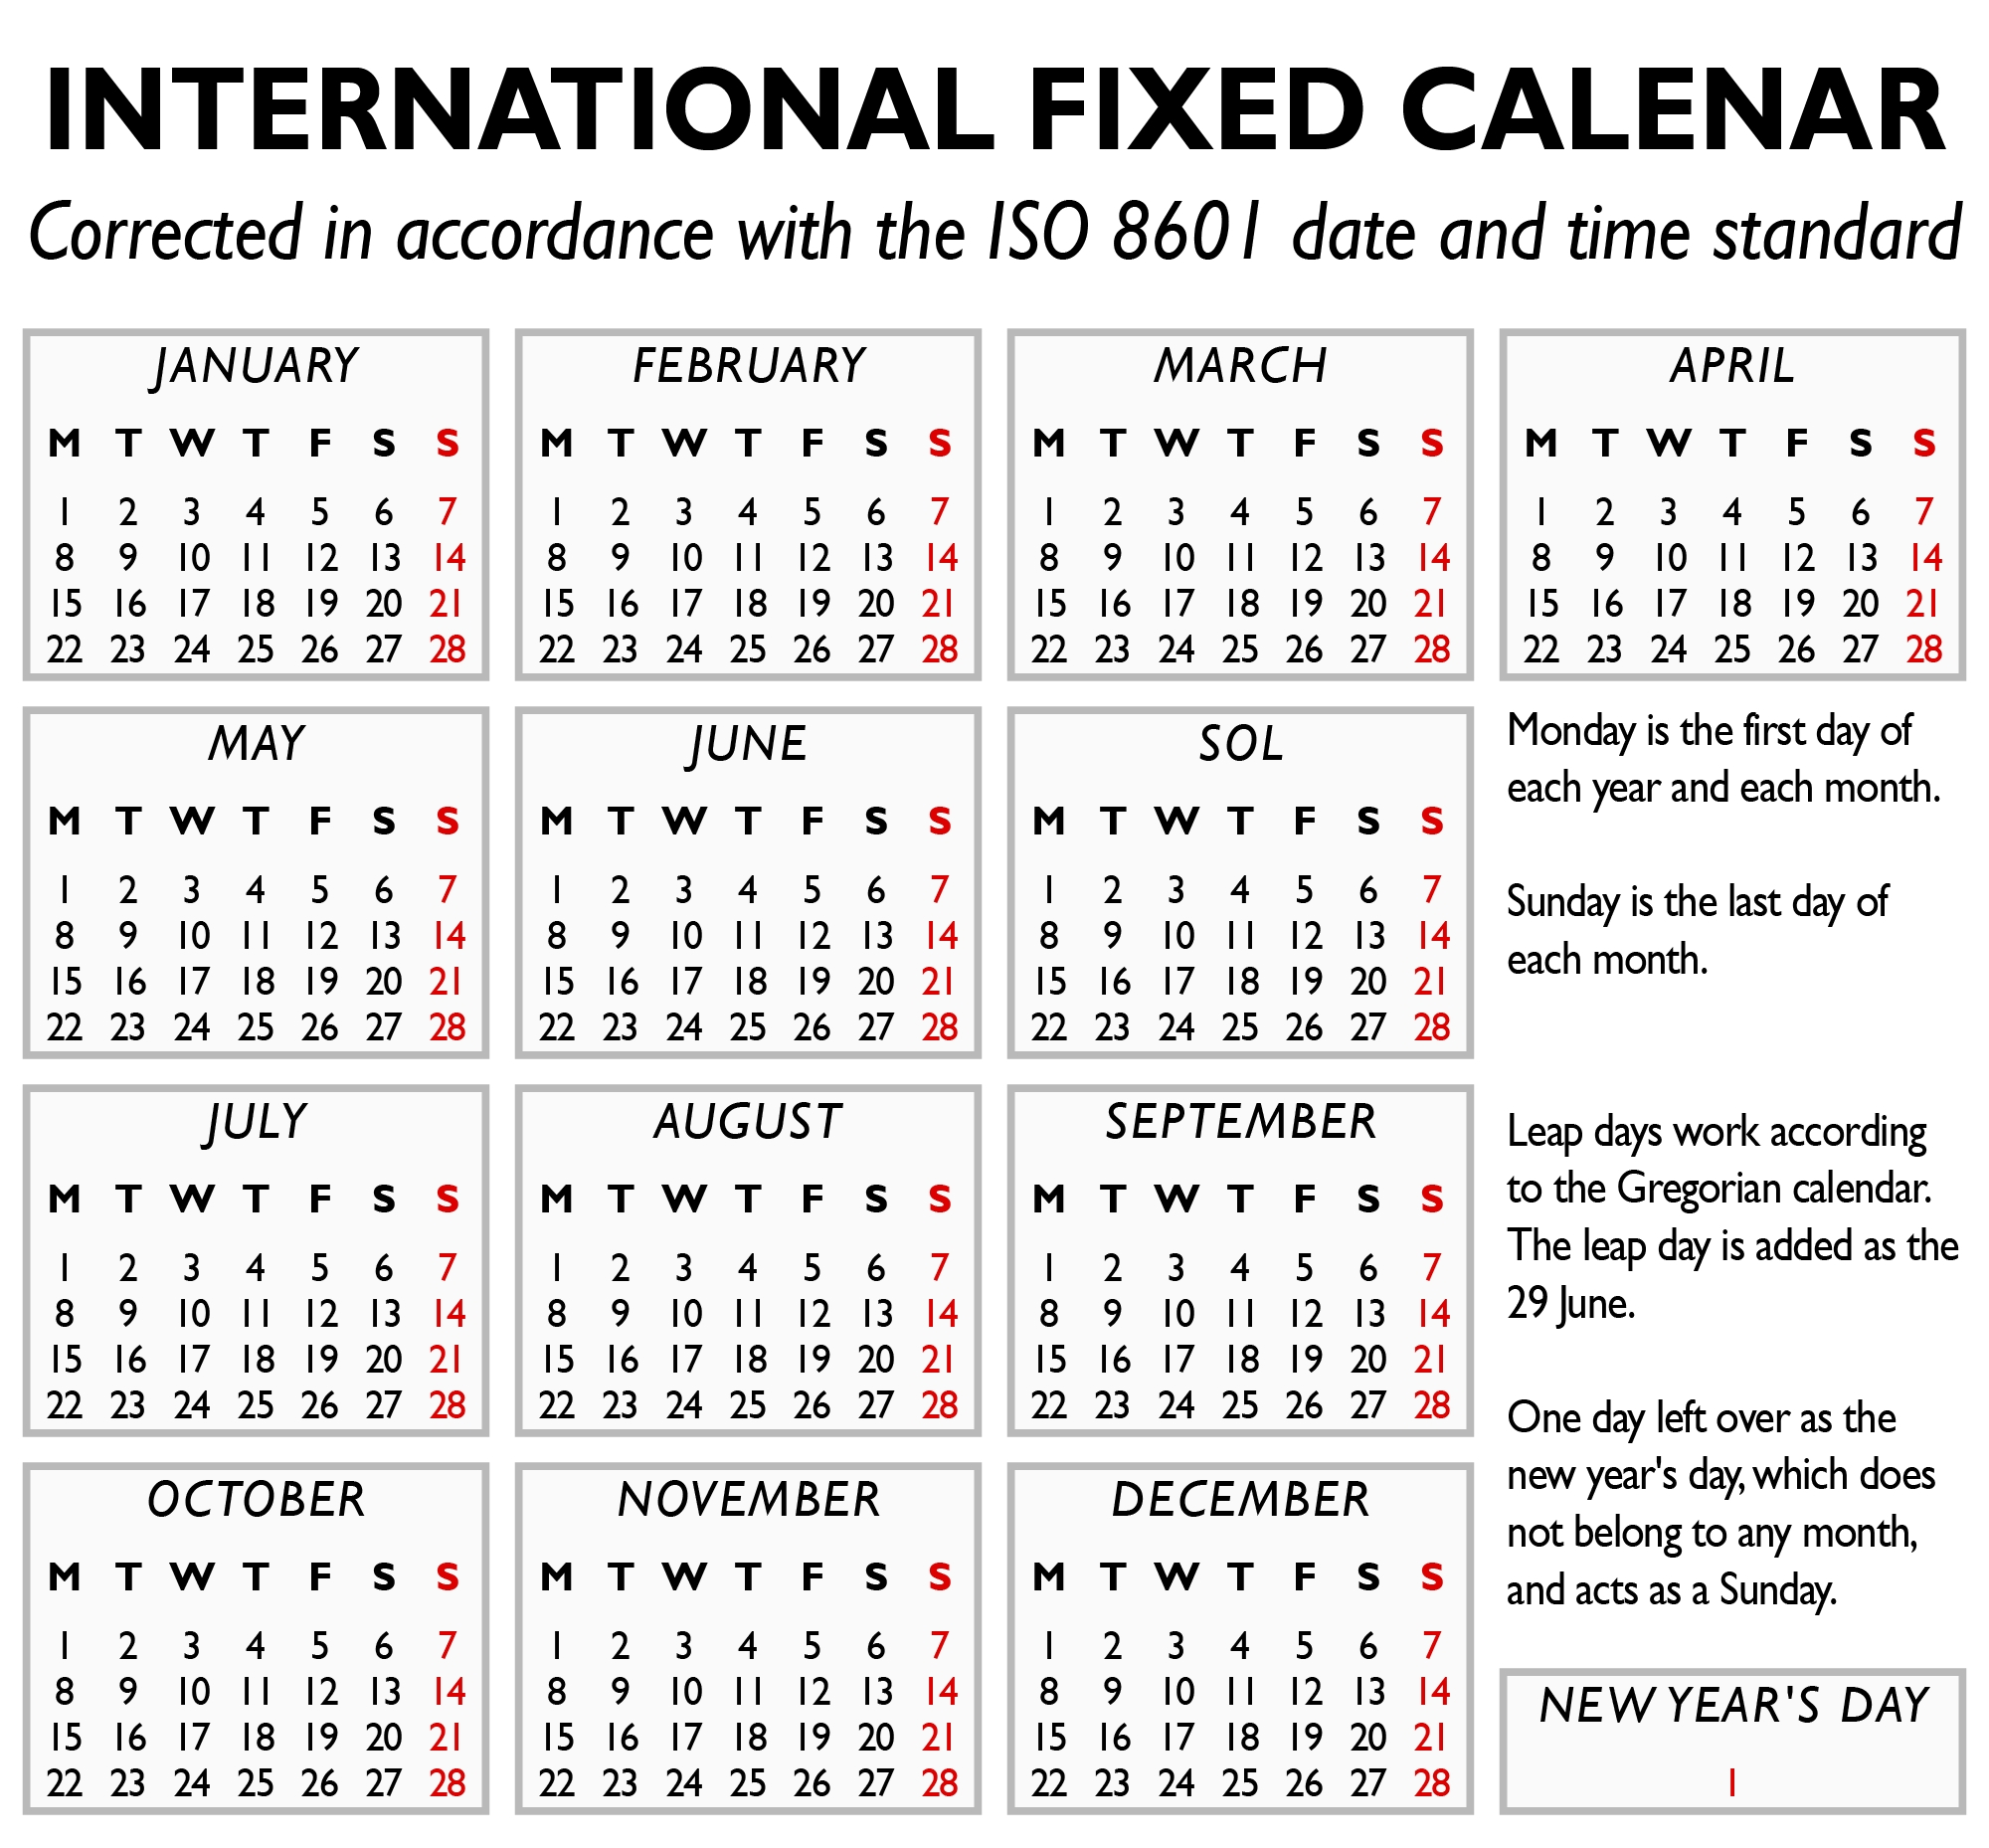 the international fixed calendar, but actually using the